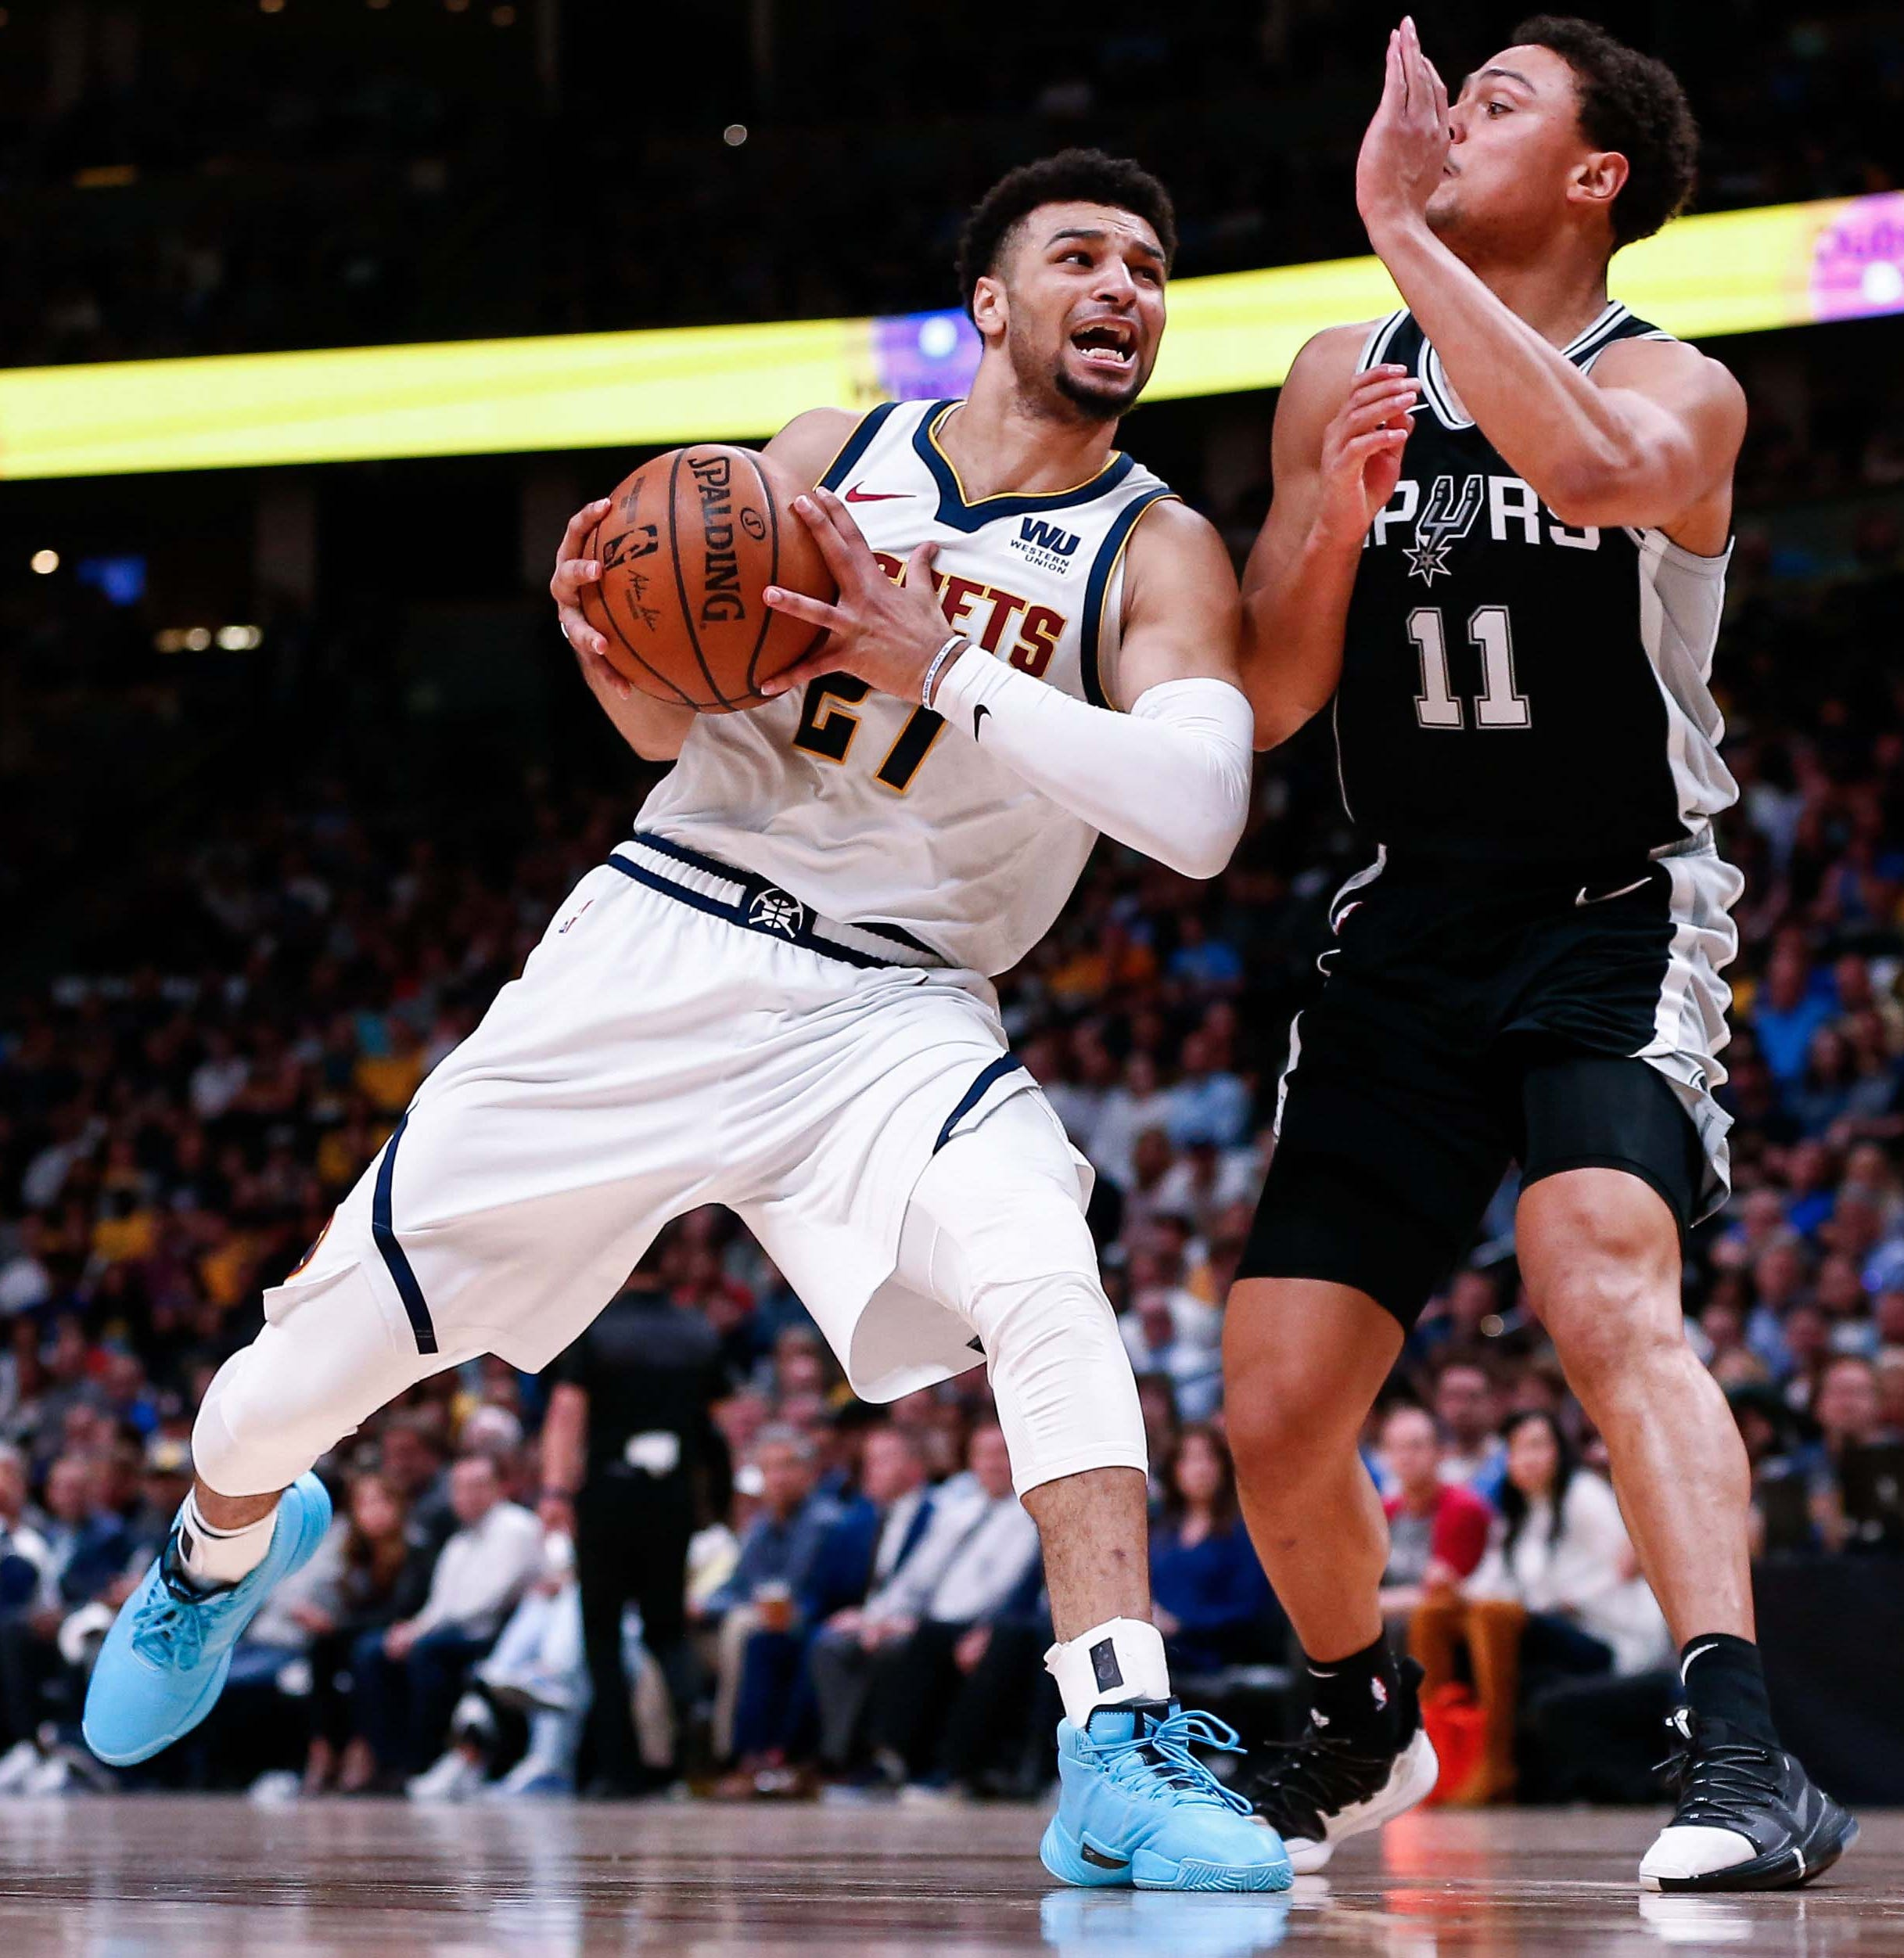 April 16: Nuggets guard Jamal Murray goes to the basket as Spurs guard Bryn Forbes defends in the second quarter of Game 2. The Nuggets won the game, 114-105.